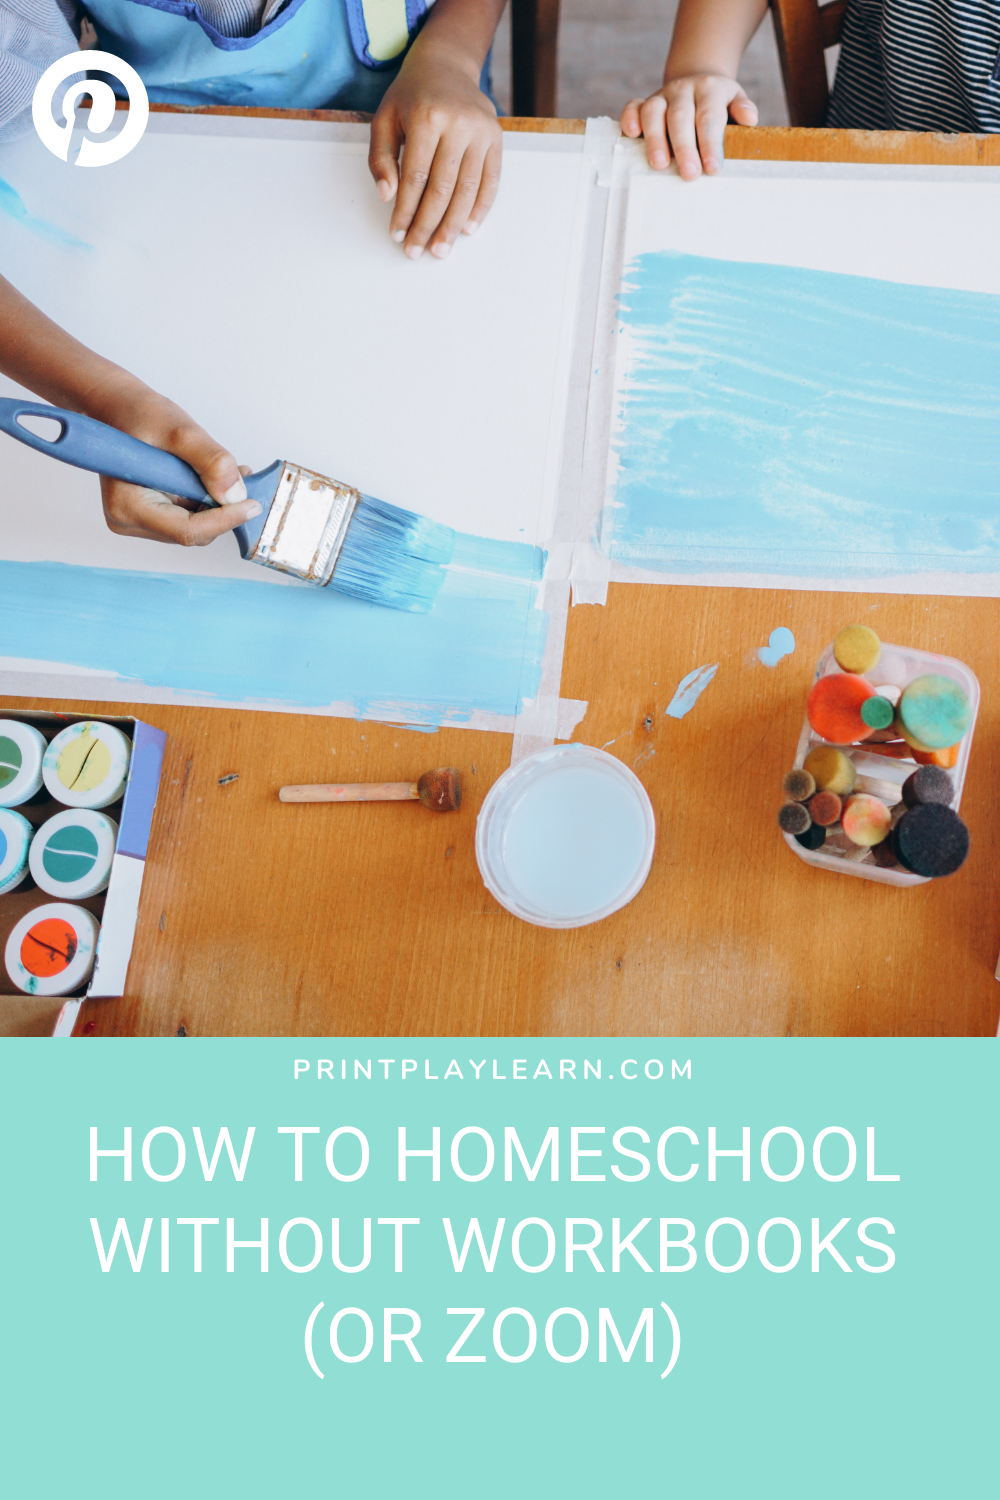 HOW TO HOMESCHOOL WITHOUT WORKBOOKS (OR ZOOM) printplaylearn